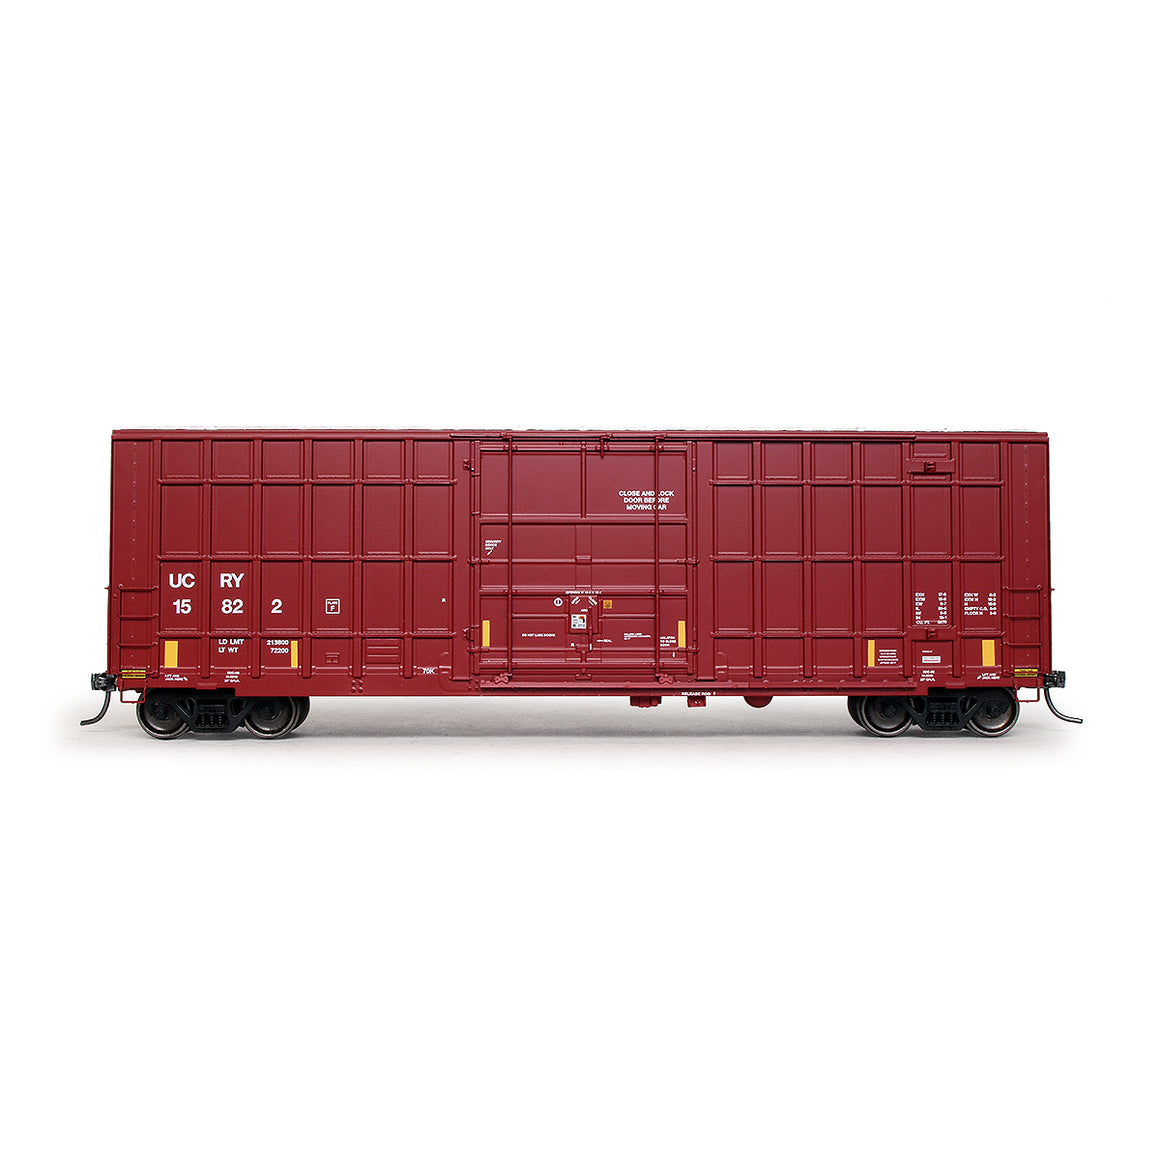 HO Scale: Trinity 6275 Boxcar - Utah Central Railway - '2017 As-Delivered'